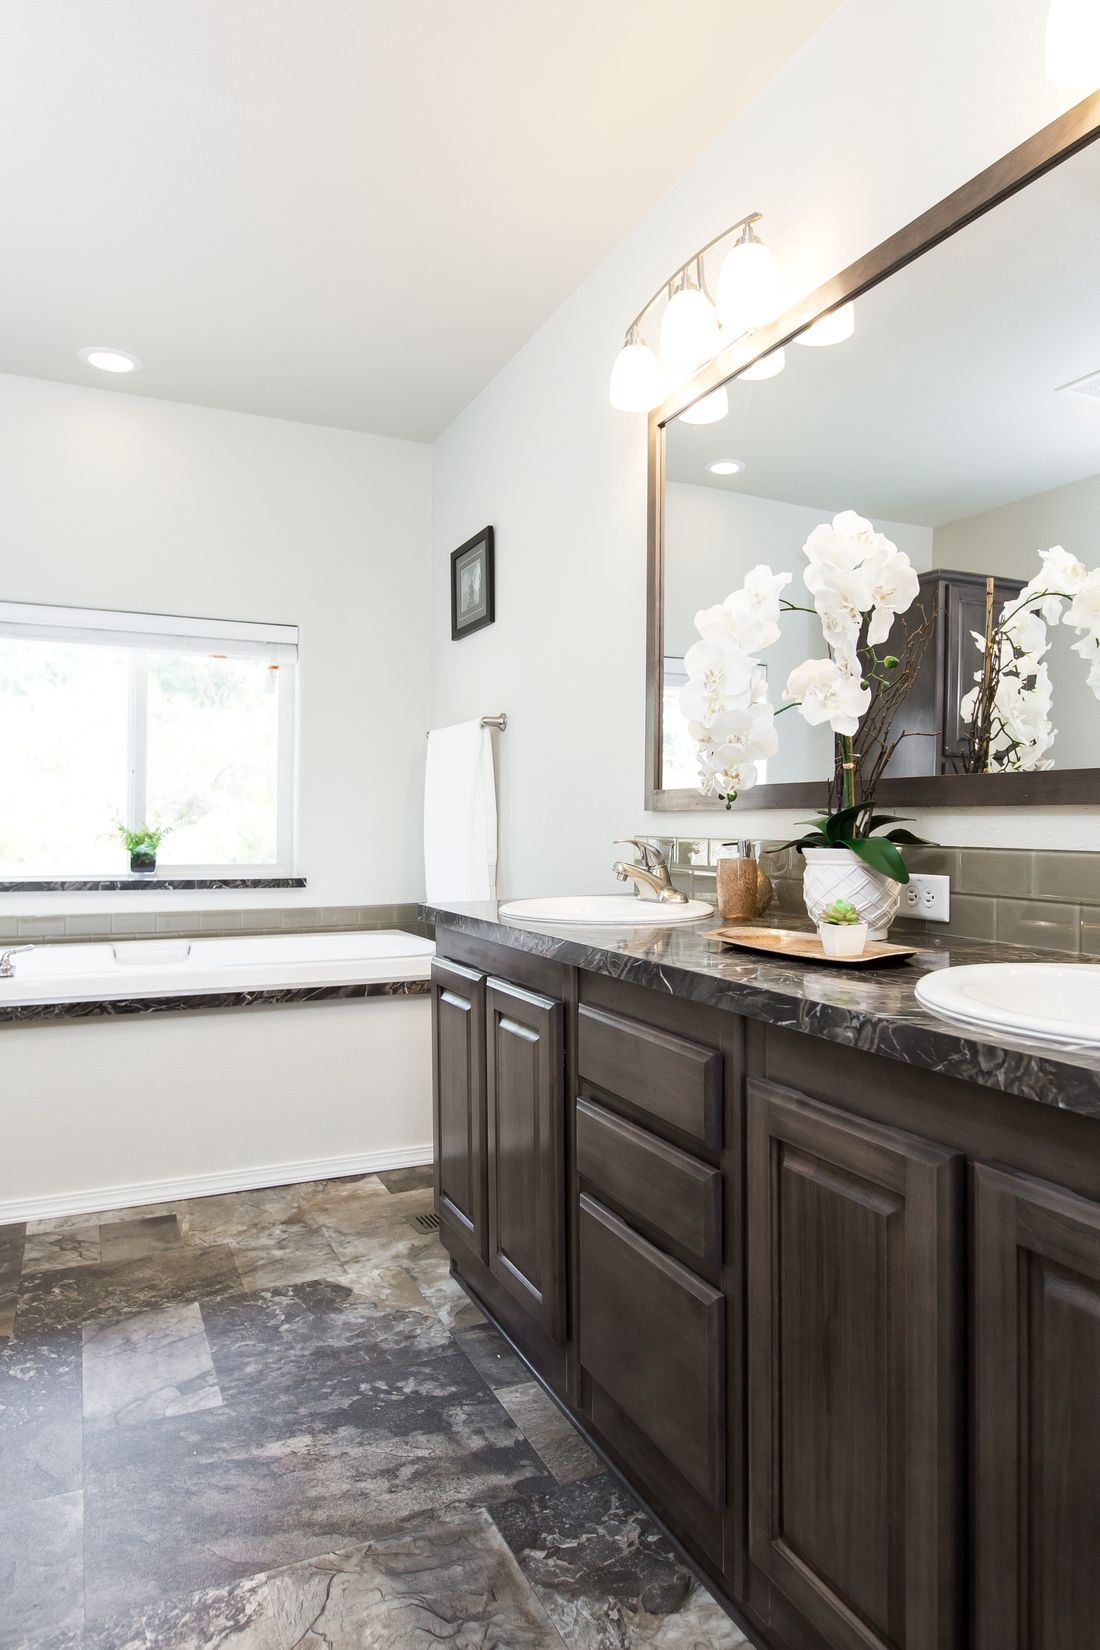 The 2868 MARLETTE SPECIAL Master Bathroom. This Manufactured Mobile Home features 3 bedrooms and 2.5 baths.